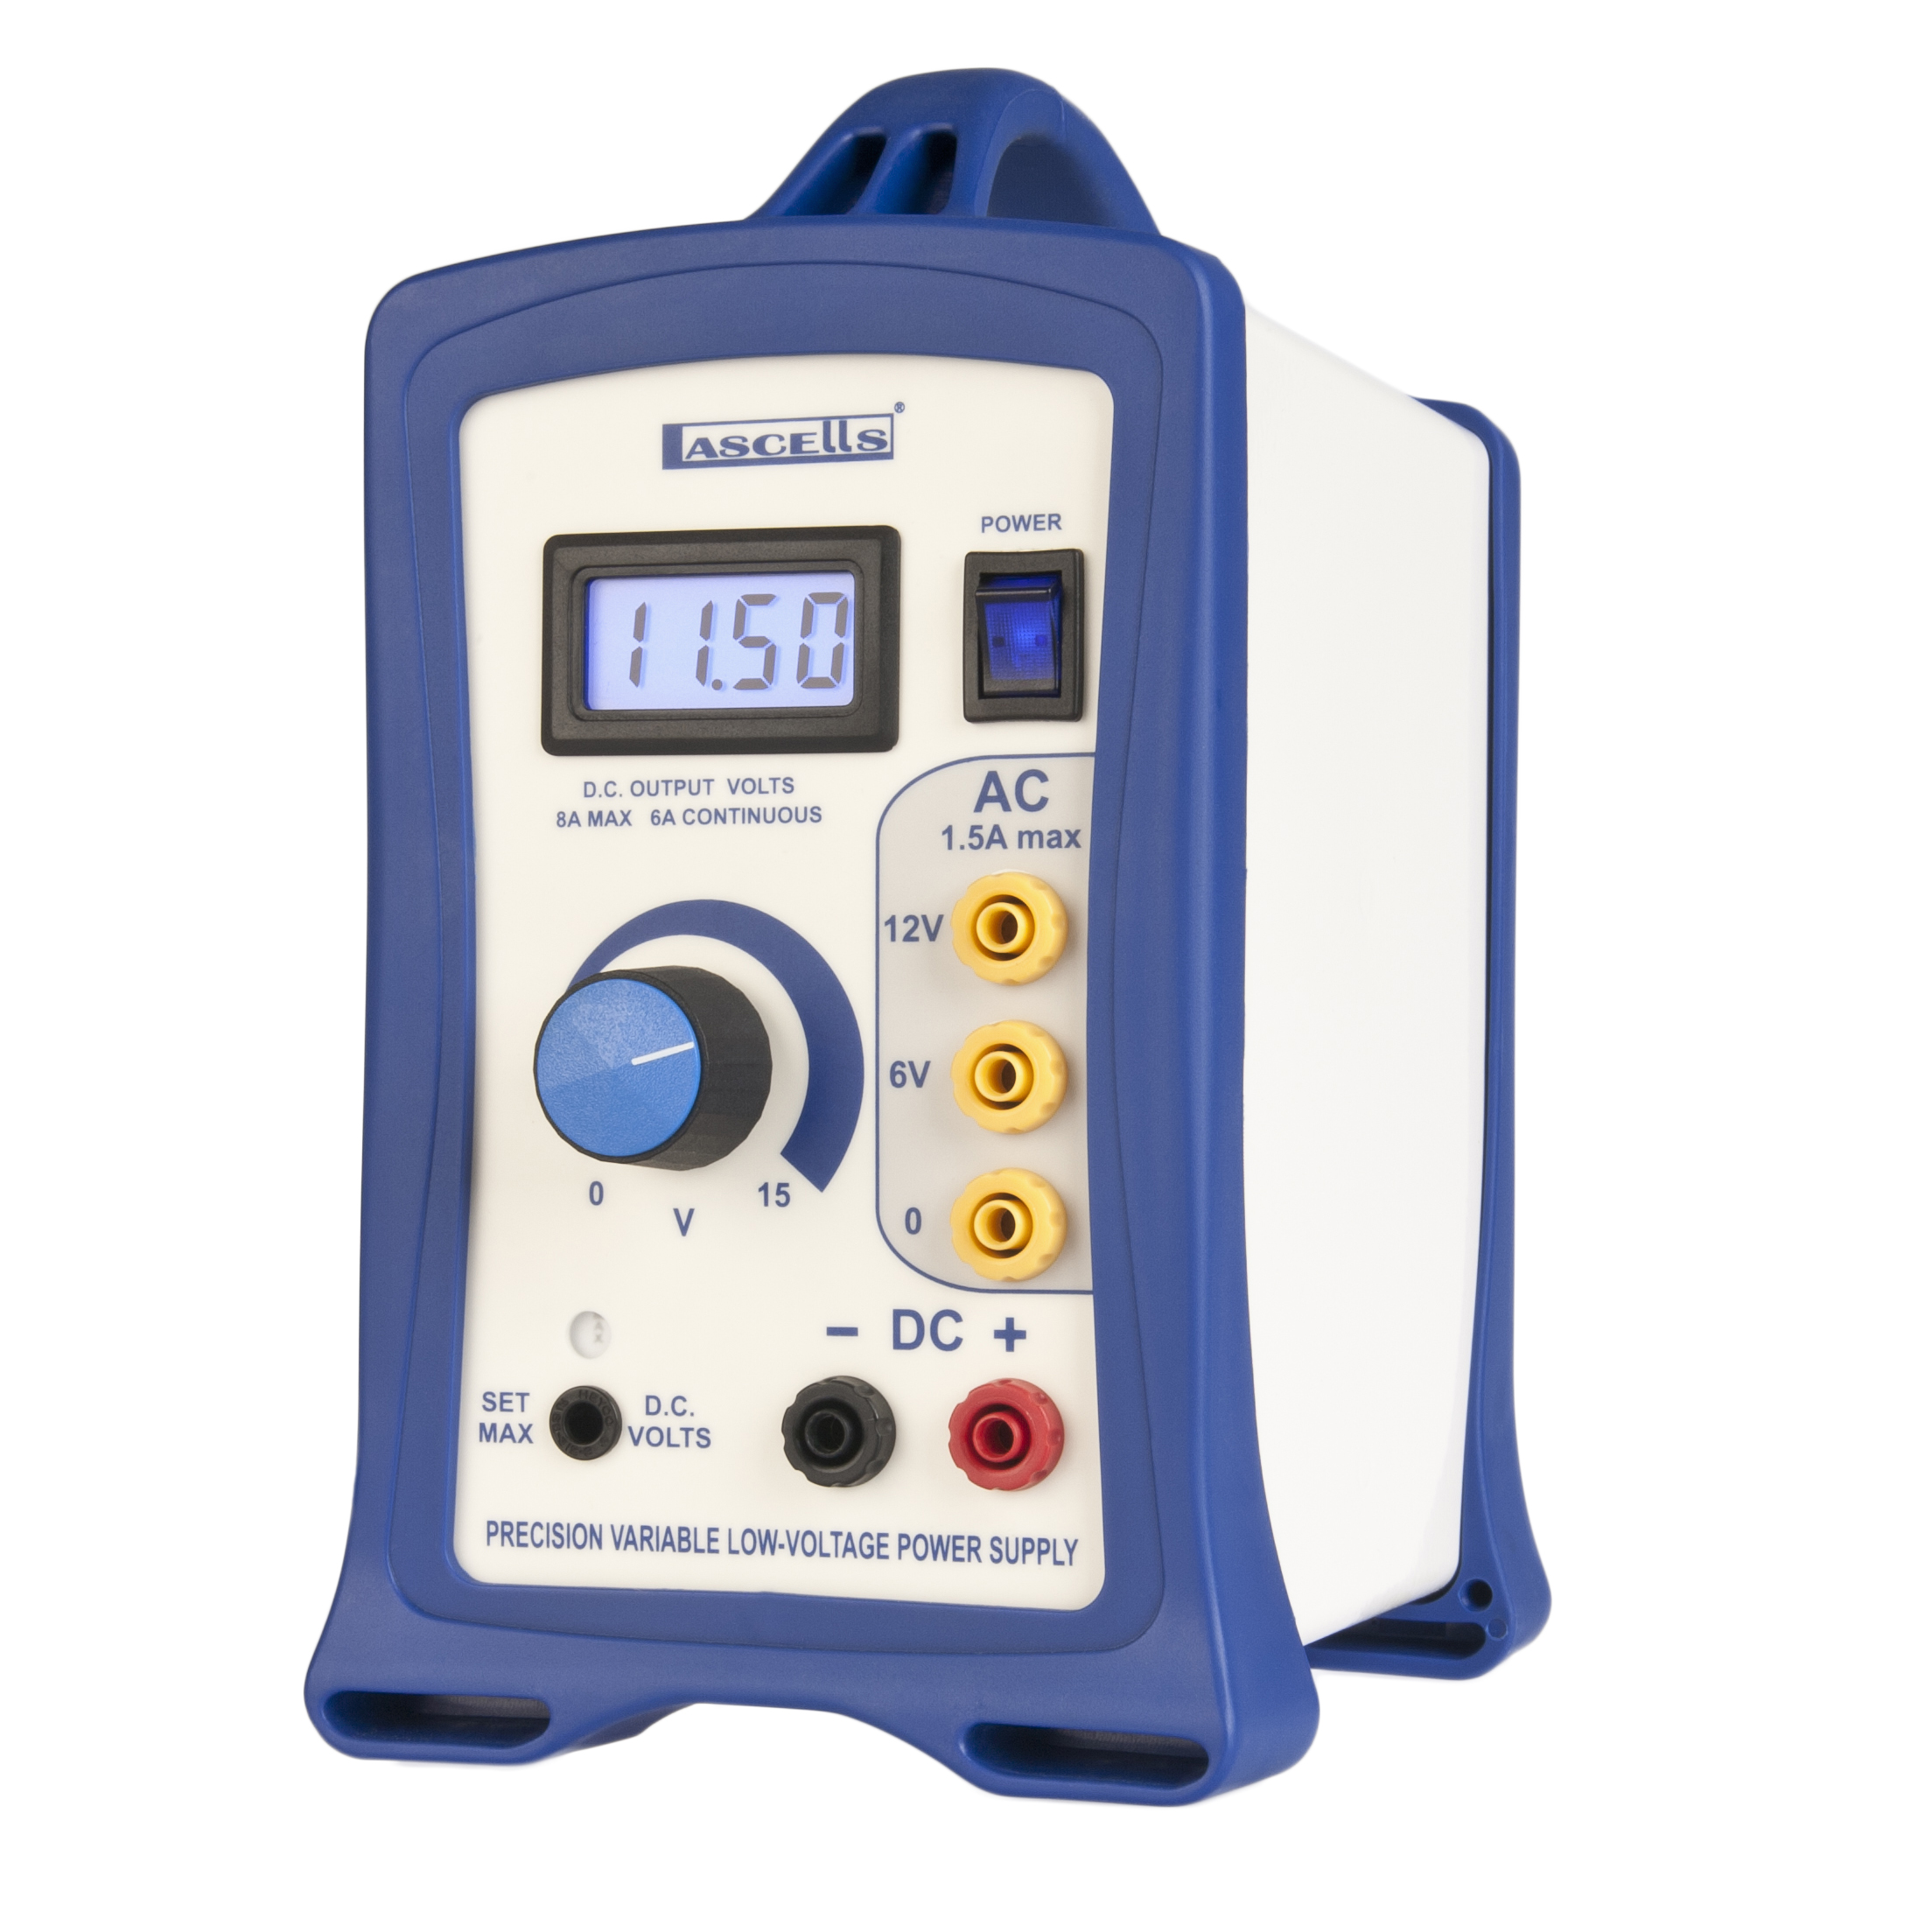 Precision Variable Power Supply - Lascells